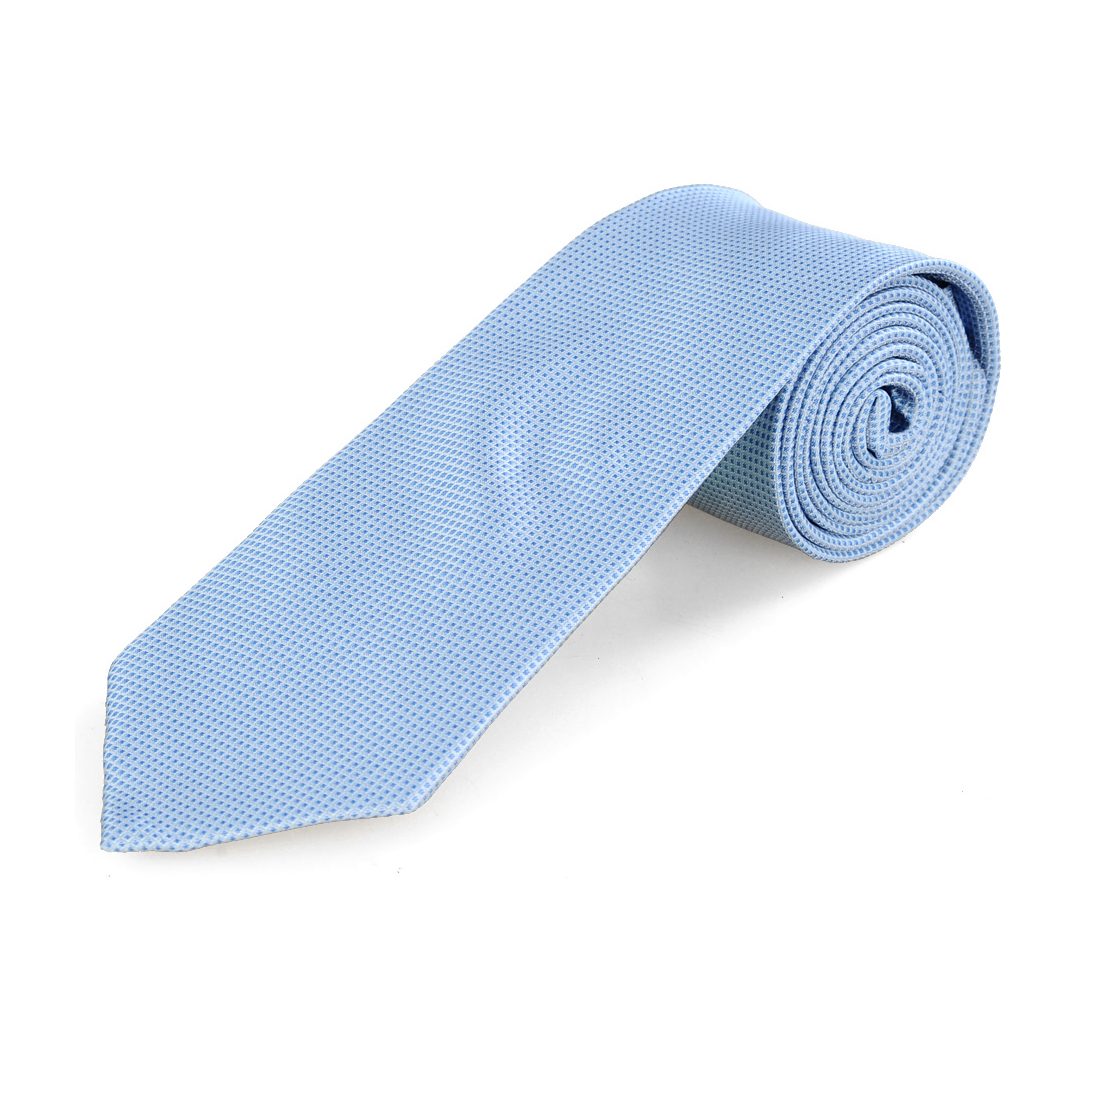 Light Blue White Carbon Fiber Pattern Polyester Neckwear Necktie for Men